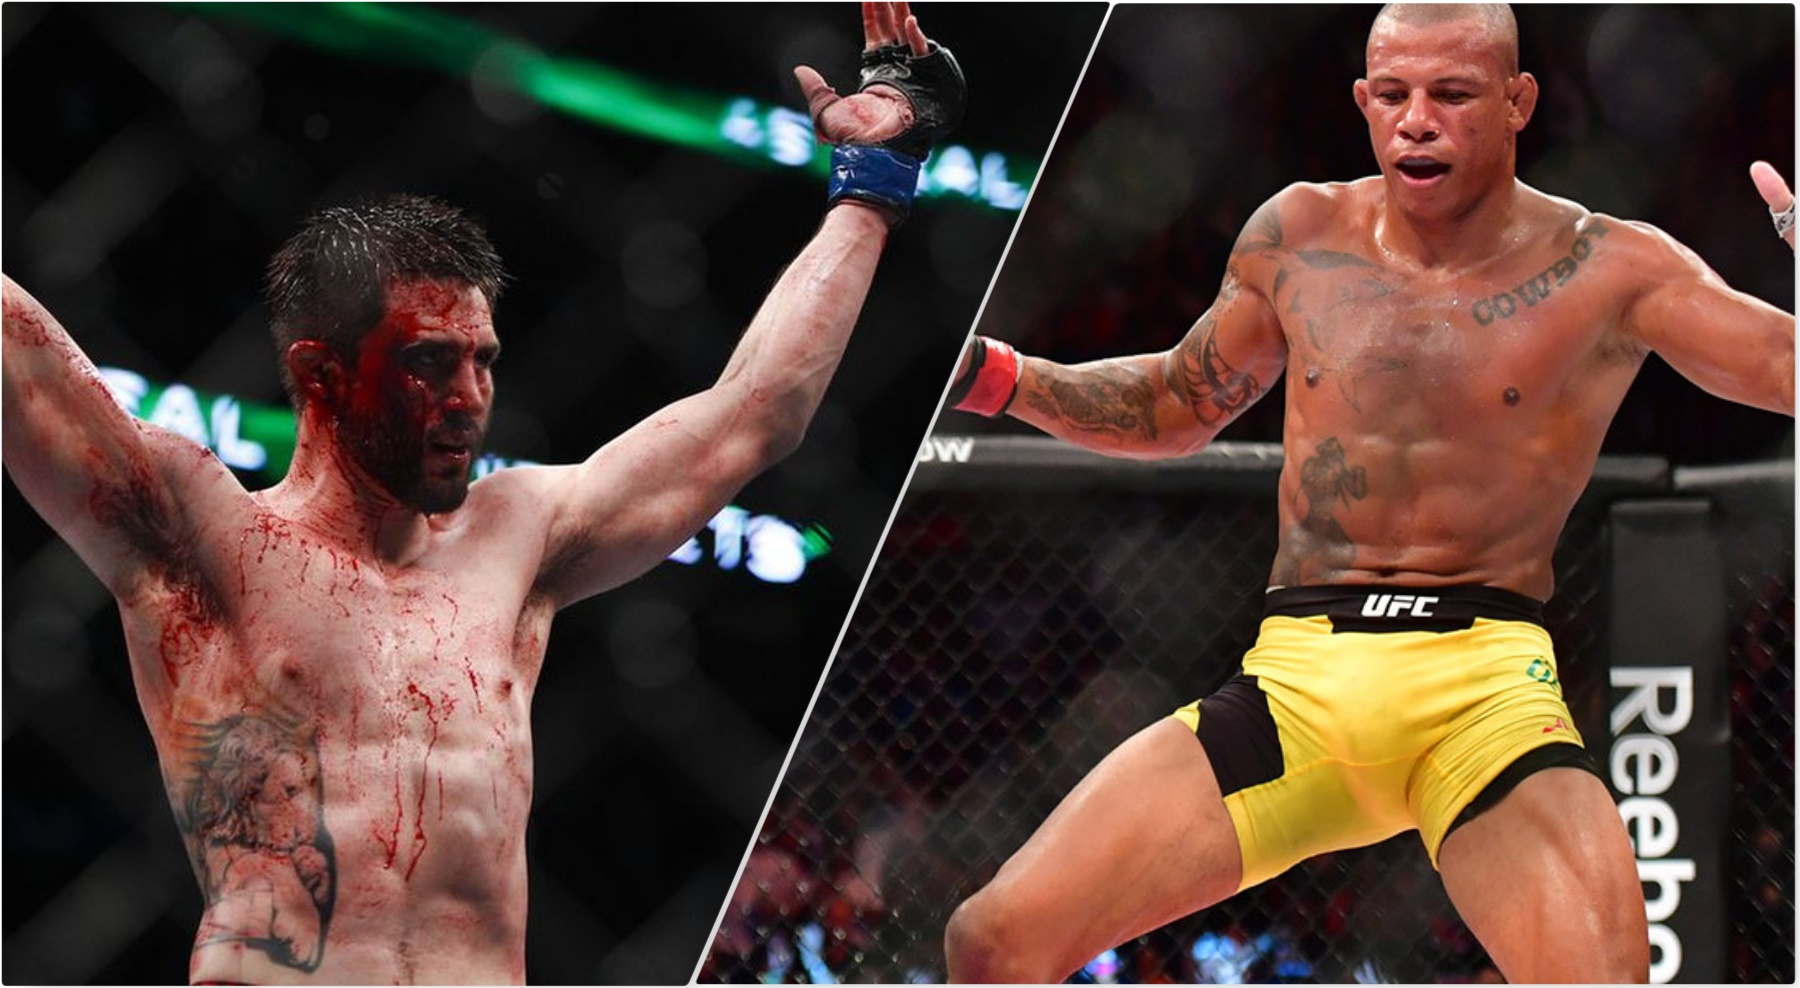 UFC on Fox 29 Poirier vs. Gaethje: 5 Fights to Watch For -